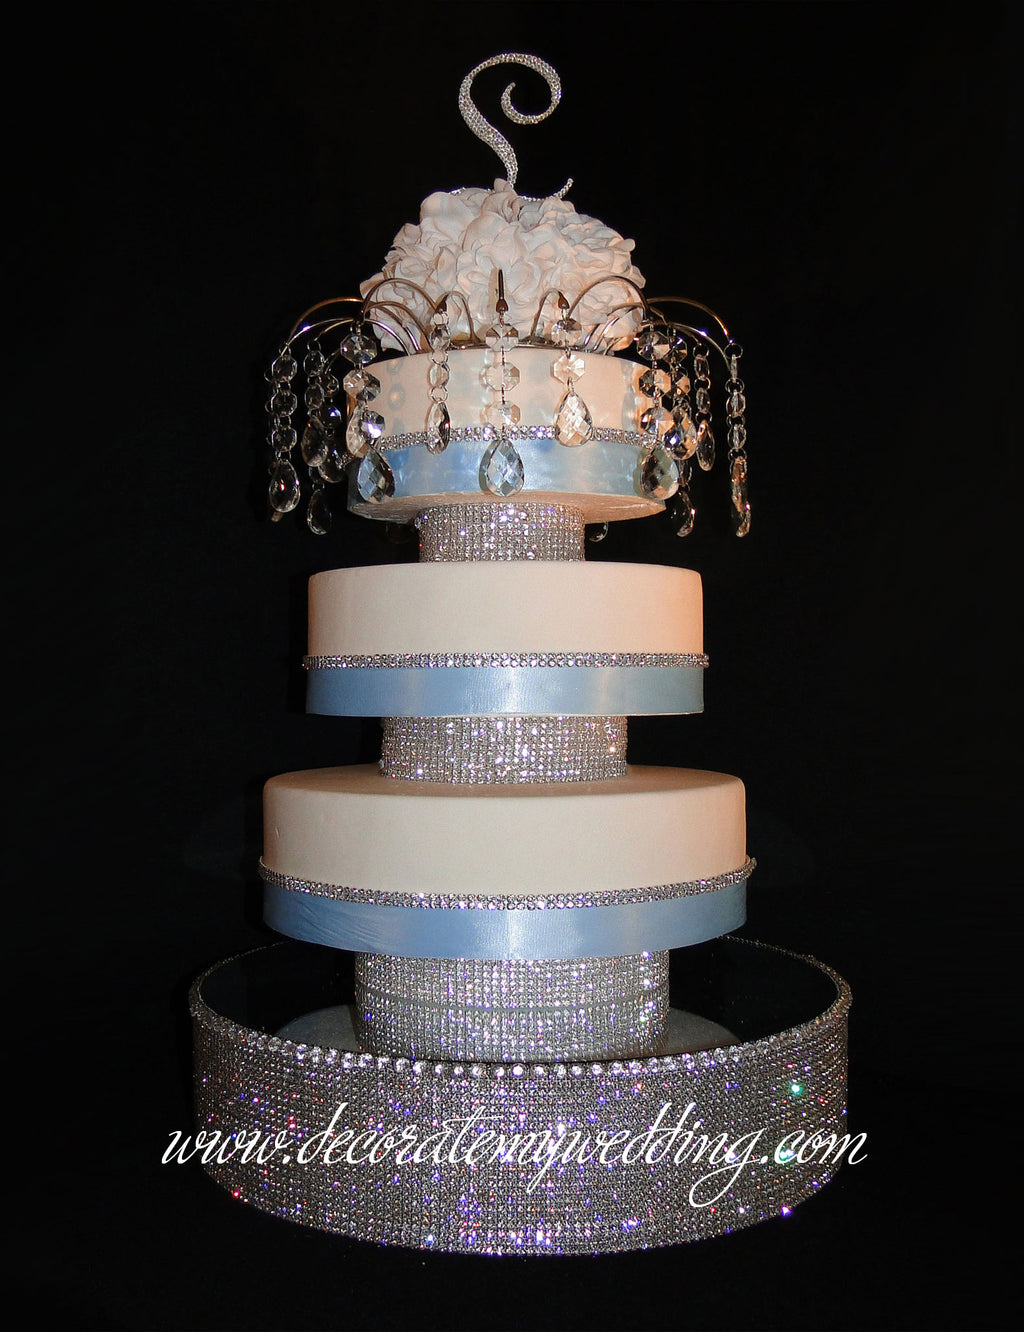 The wedding cake risers are completely covered with Swarovski rhinestones. The cake platform pictured is sold separately.